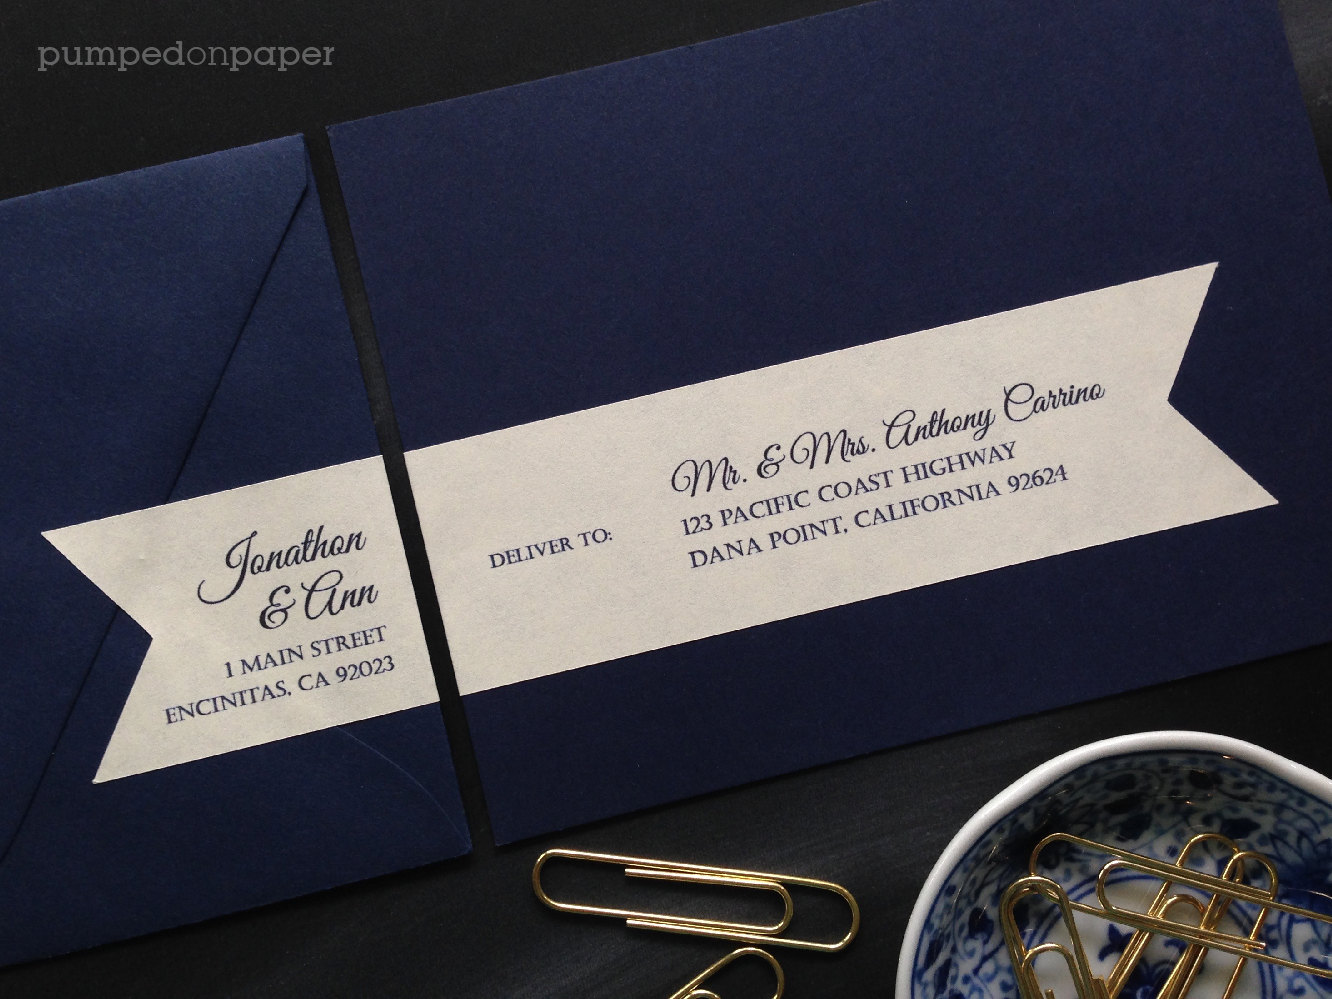 Addresses On Wedding Invitations: Personalized Mailing Address Labels For Wedding Invitations